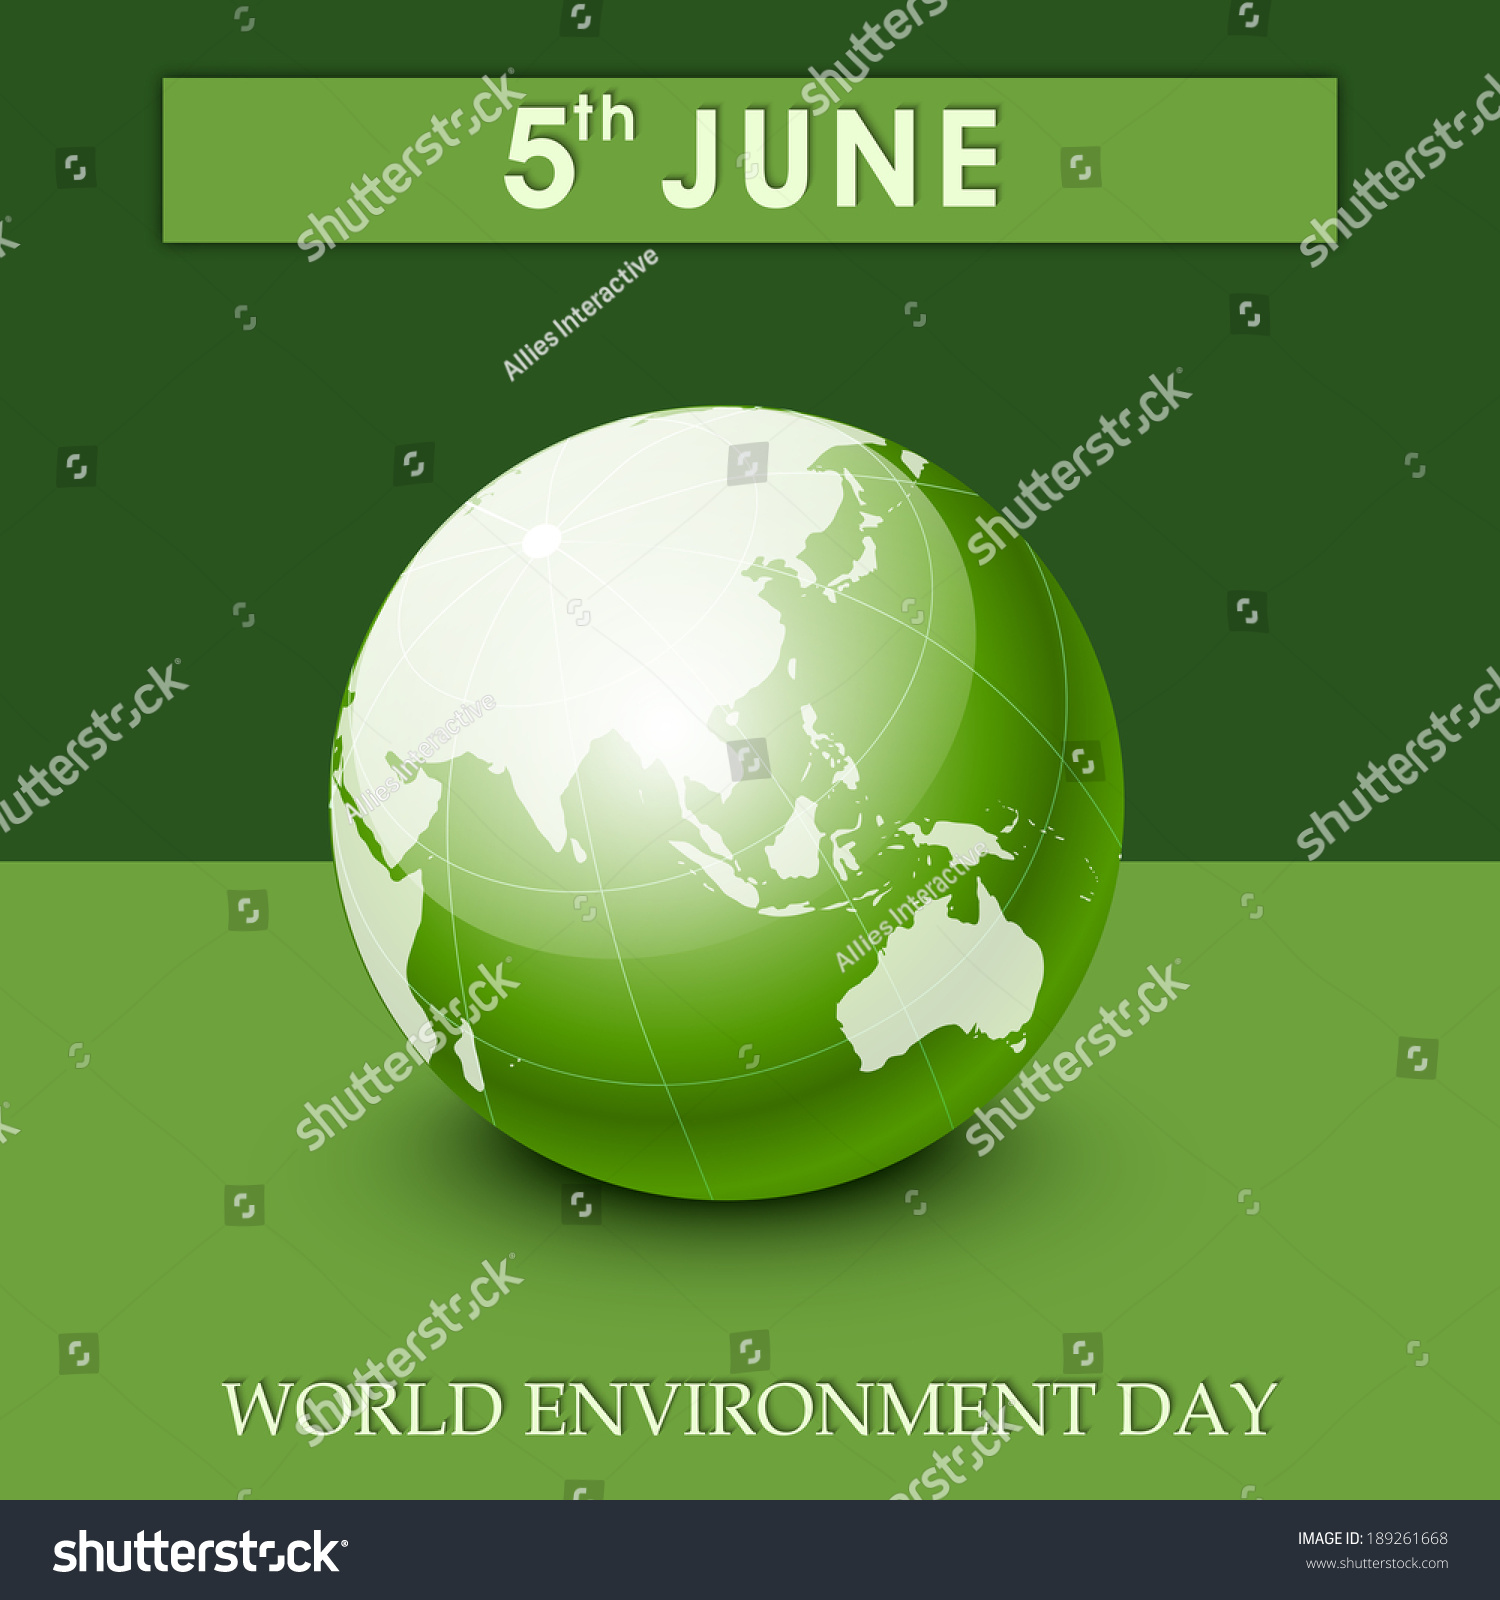 Poster design environment day - Poster Banner Or Flyer Design For World Environment Day With Shiny Globe